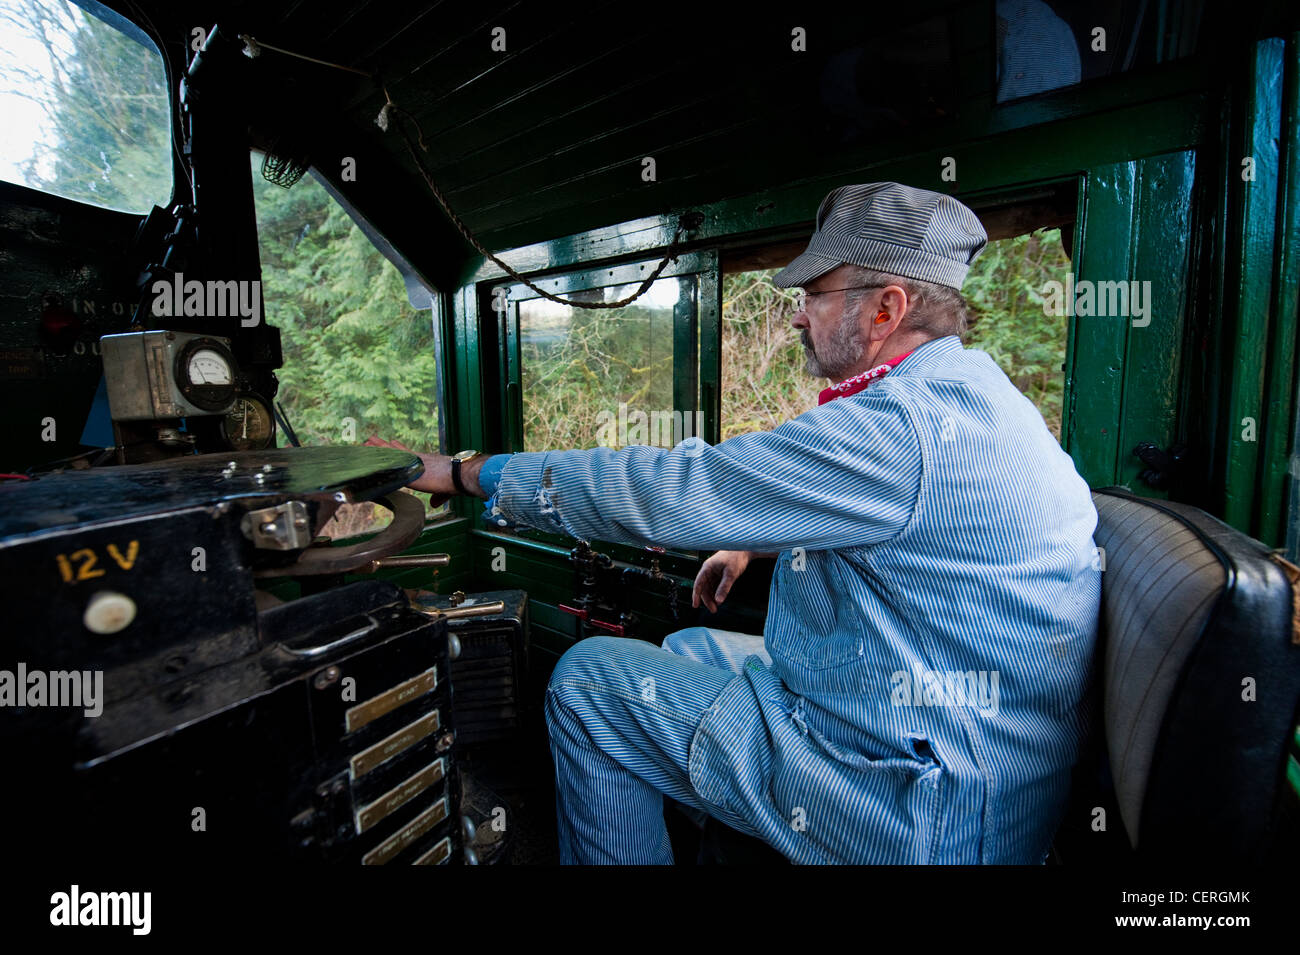 A train engineer driving an antique diesel locomotive on the Lake Whatcom Railway route in northwest Washington - Stock Image